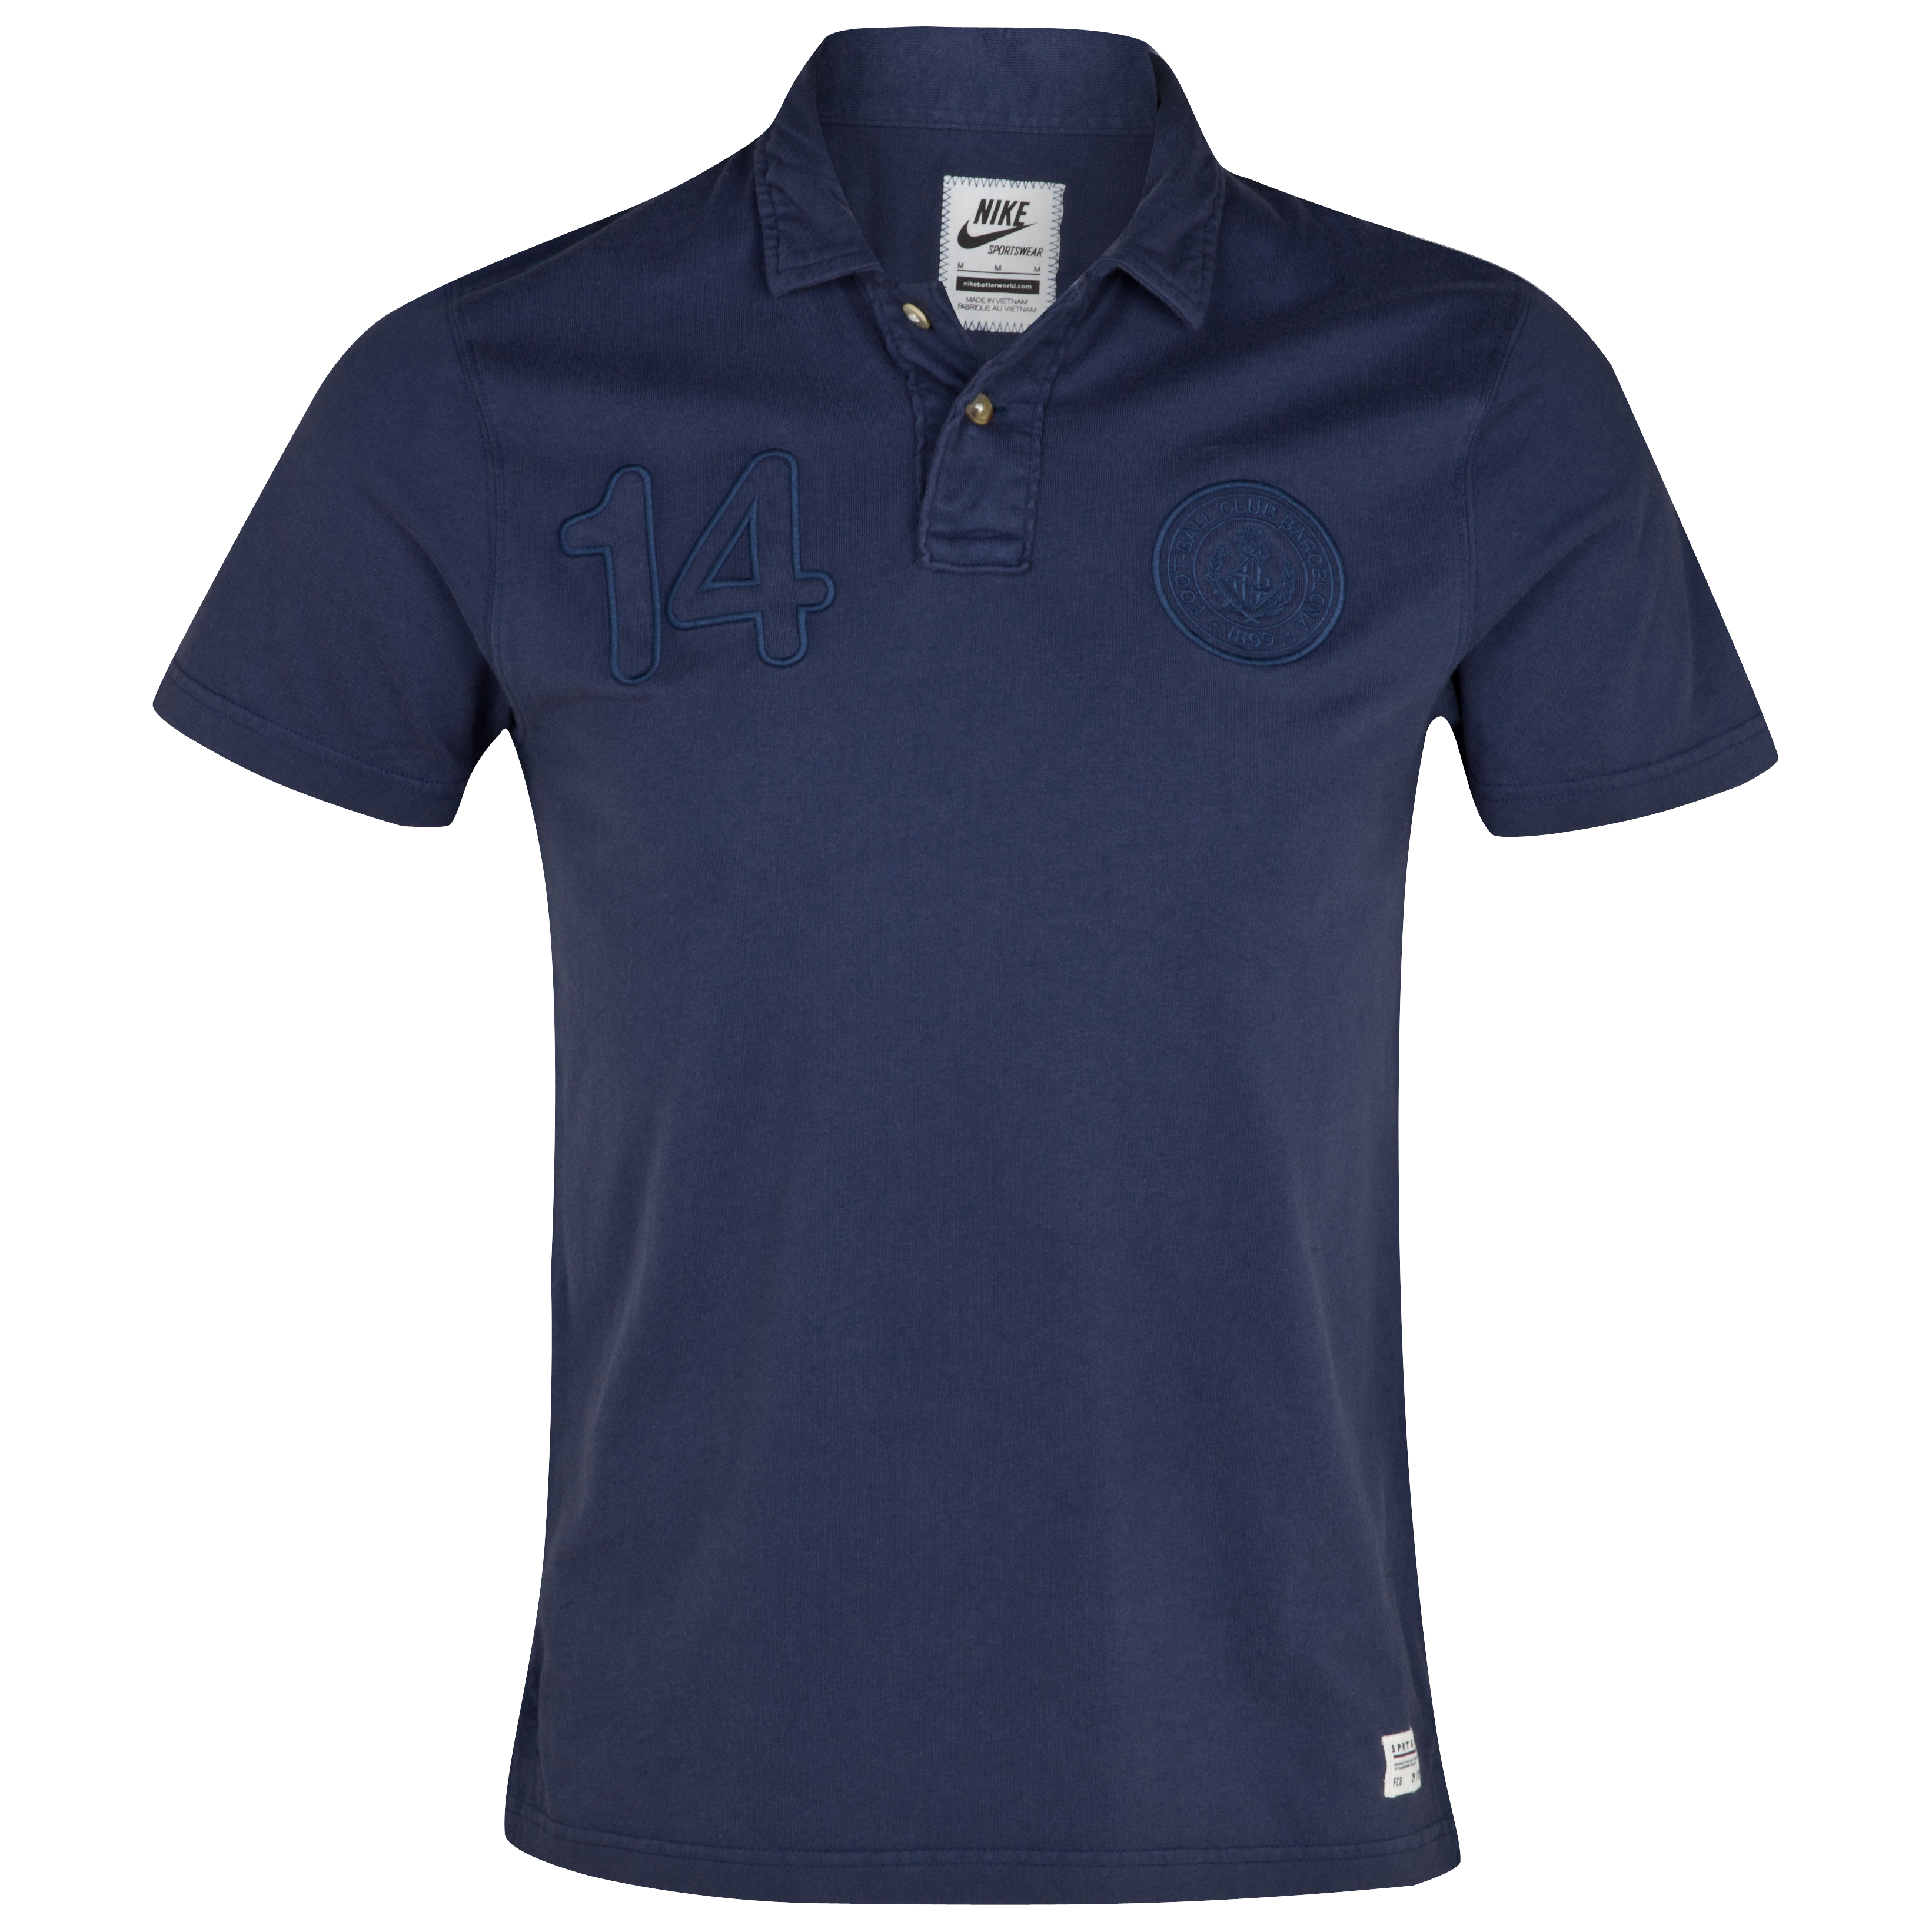 Barcelona Covert Vintage Polo - Midnight Navy